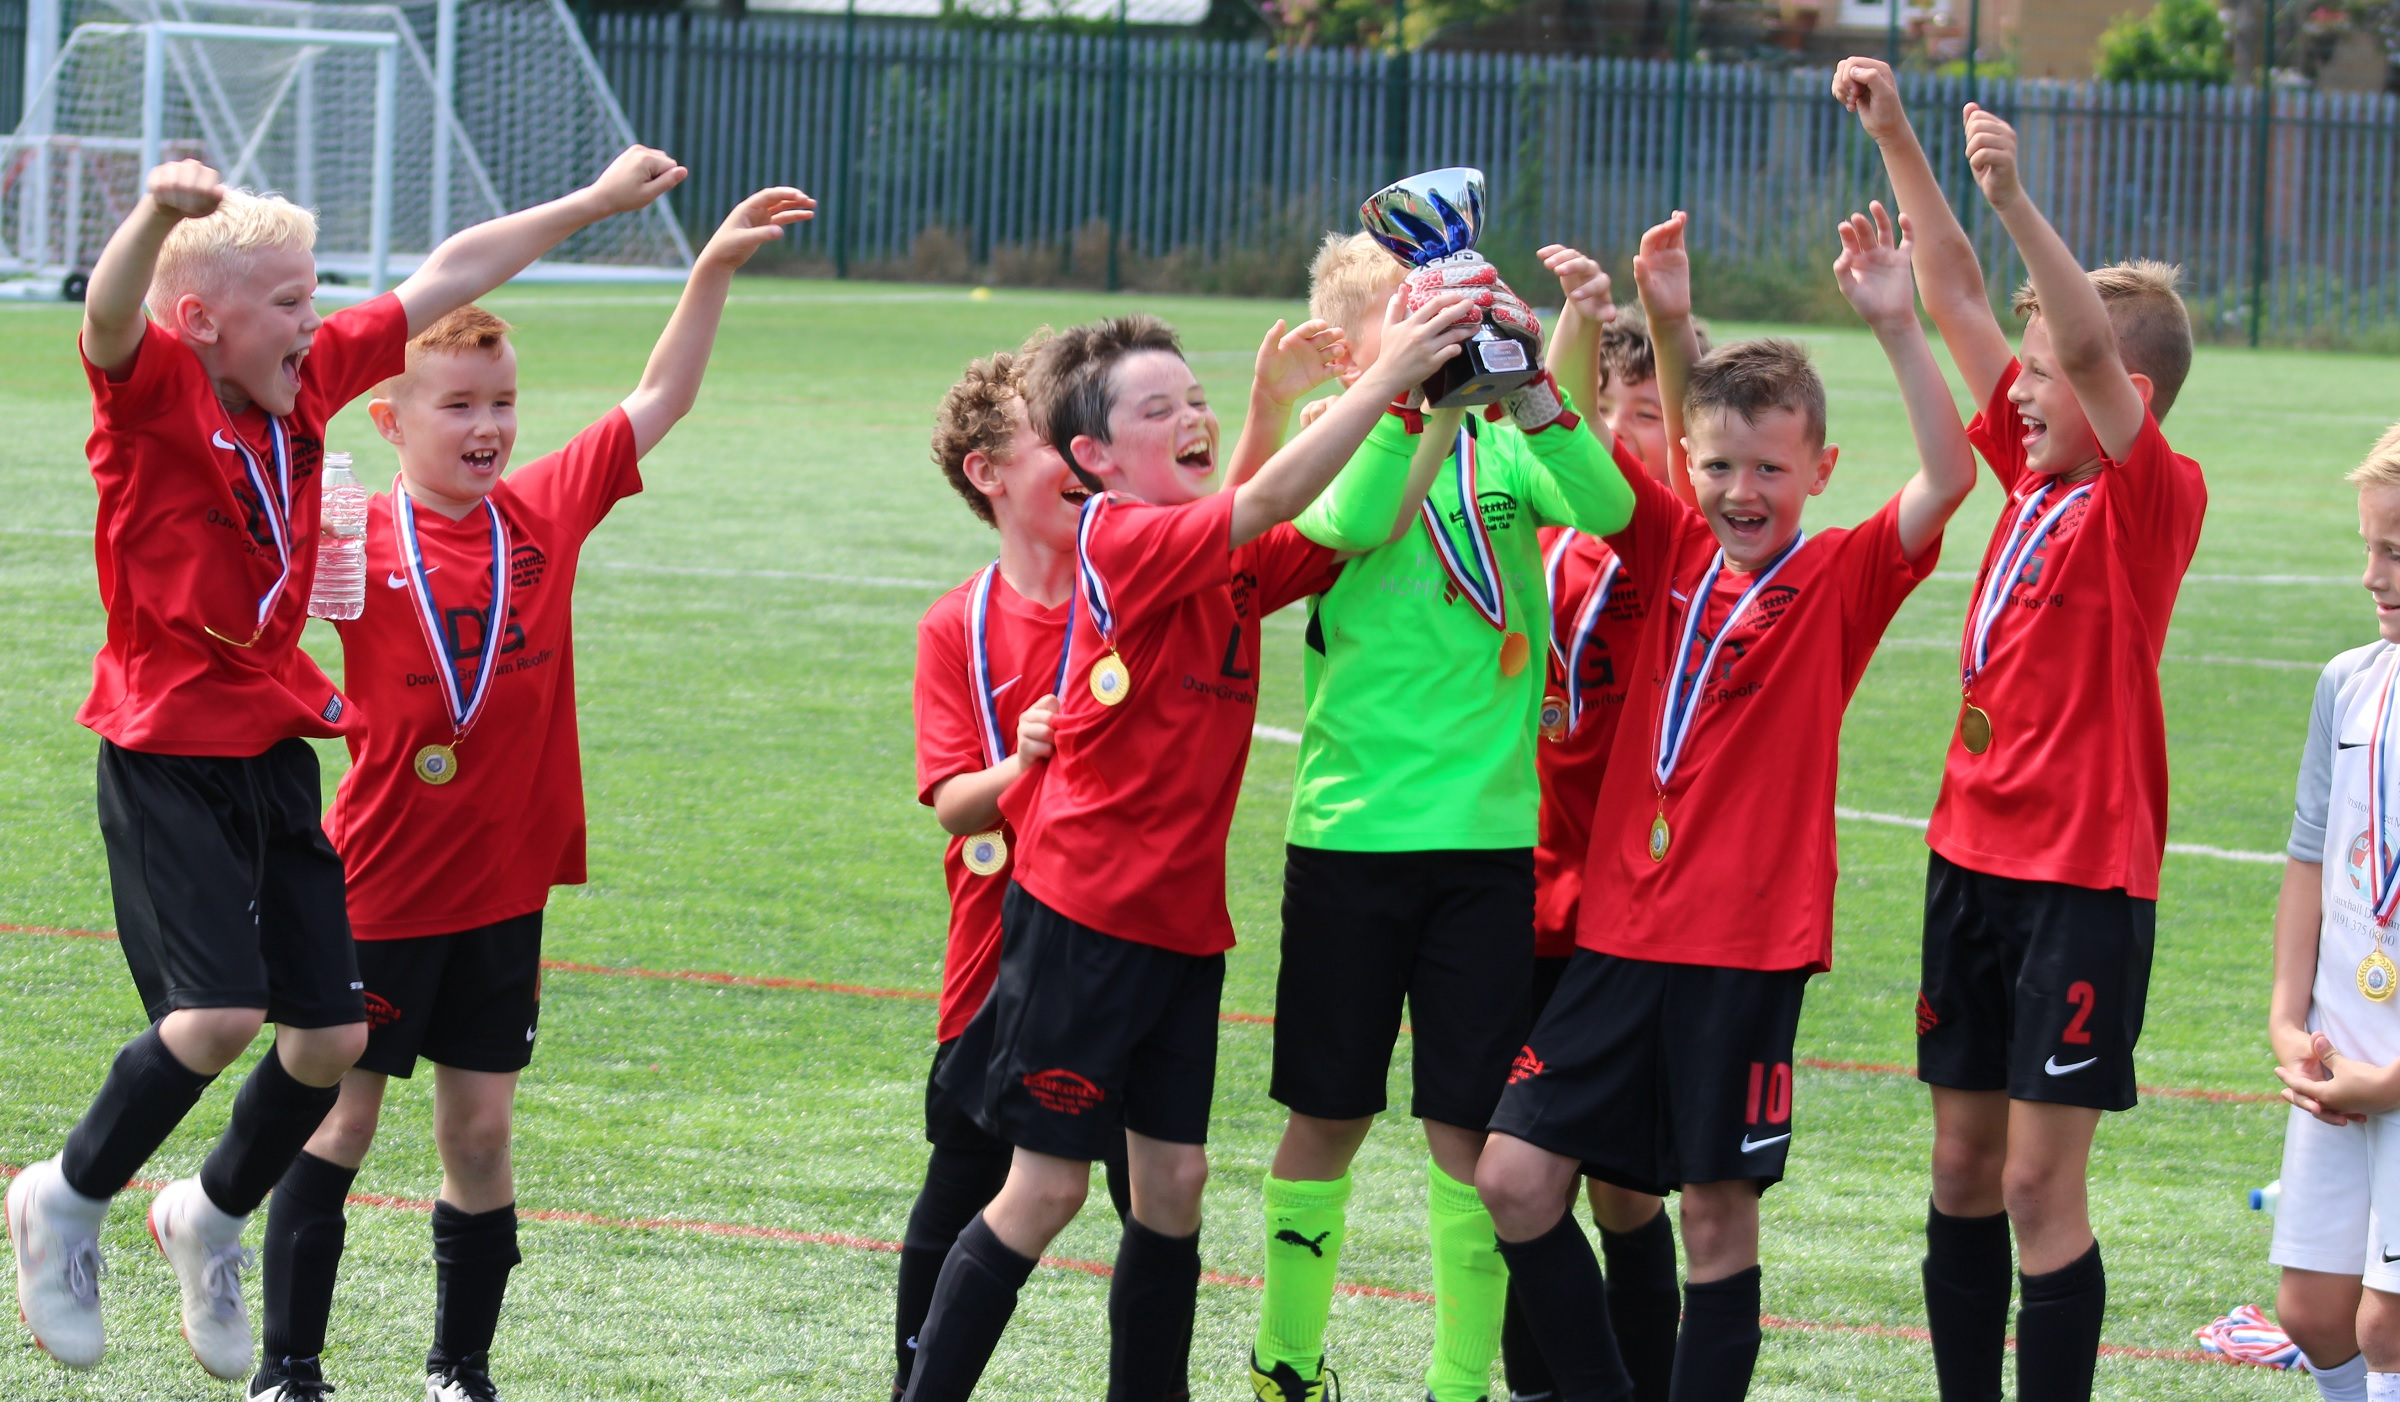 Junior football teams: Sign up for summer tournaments now!